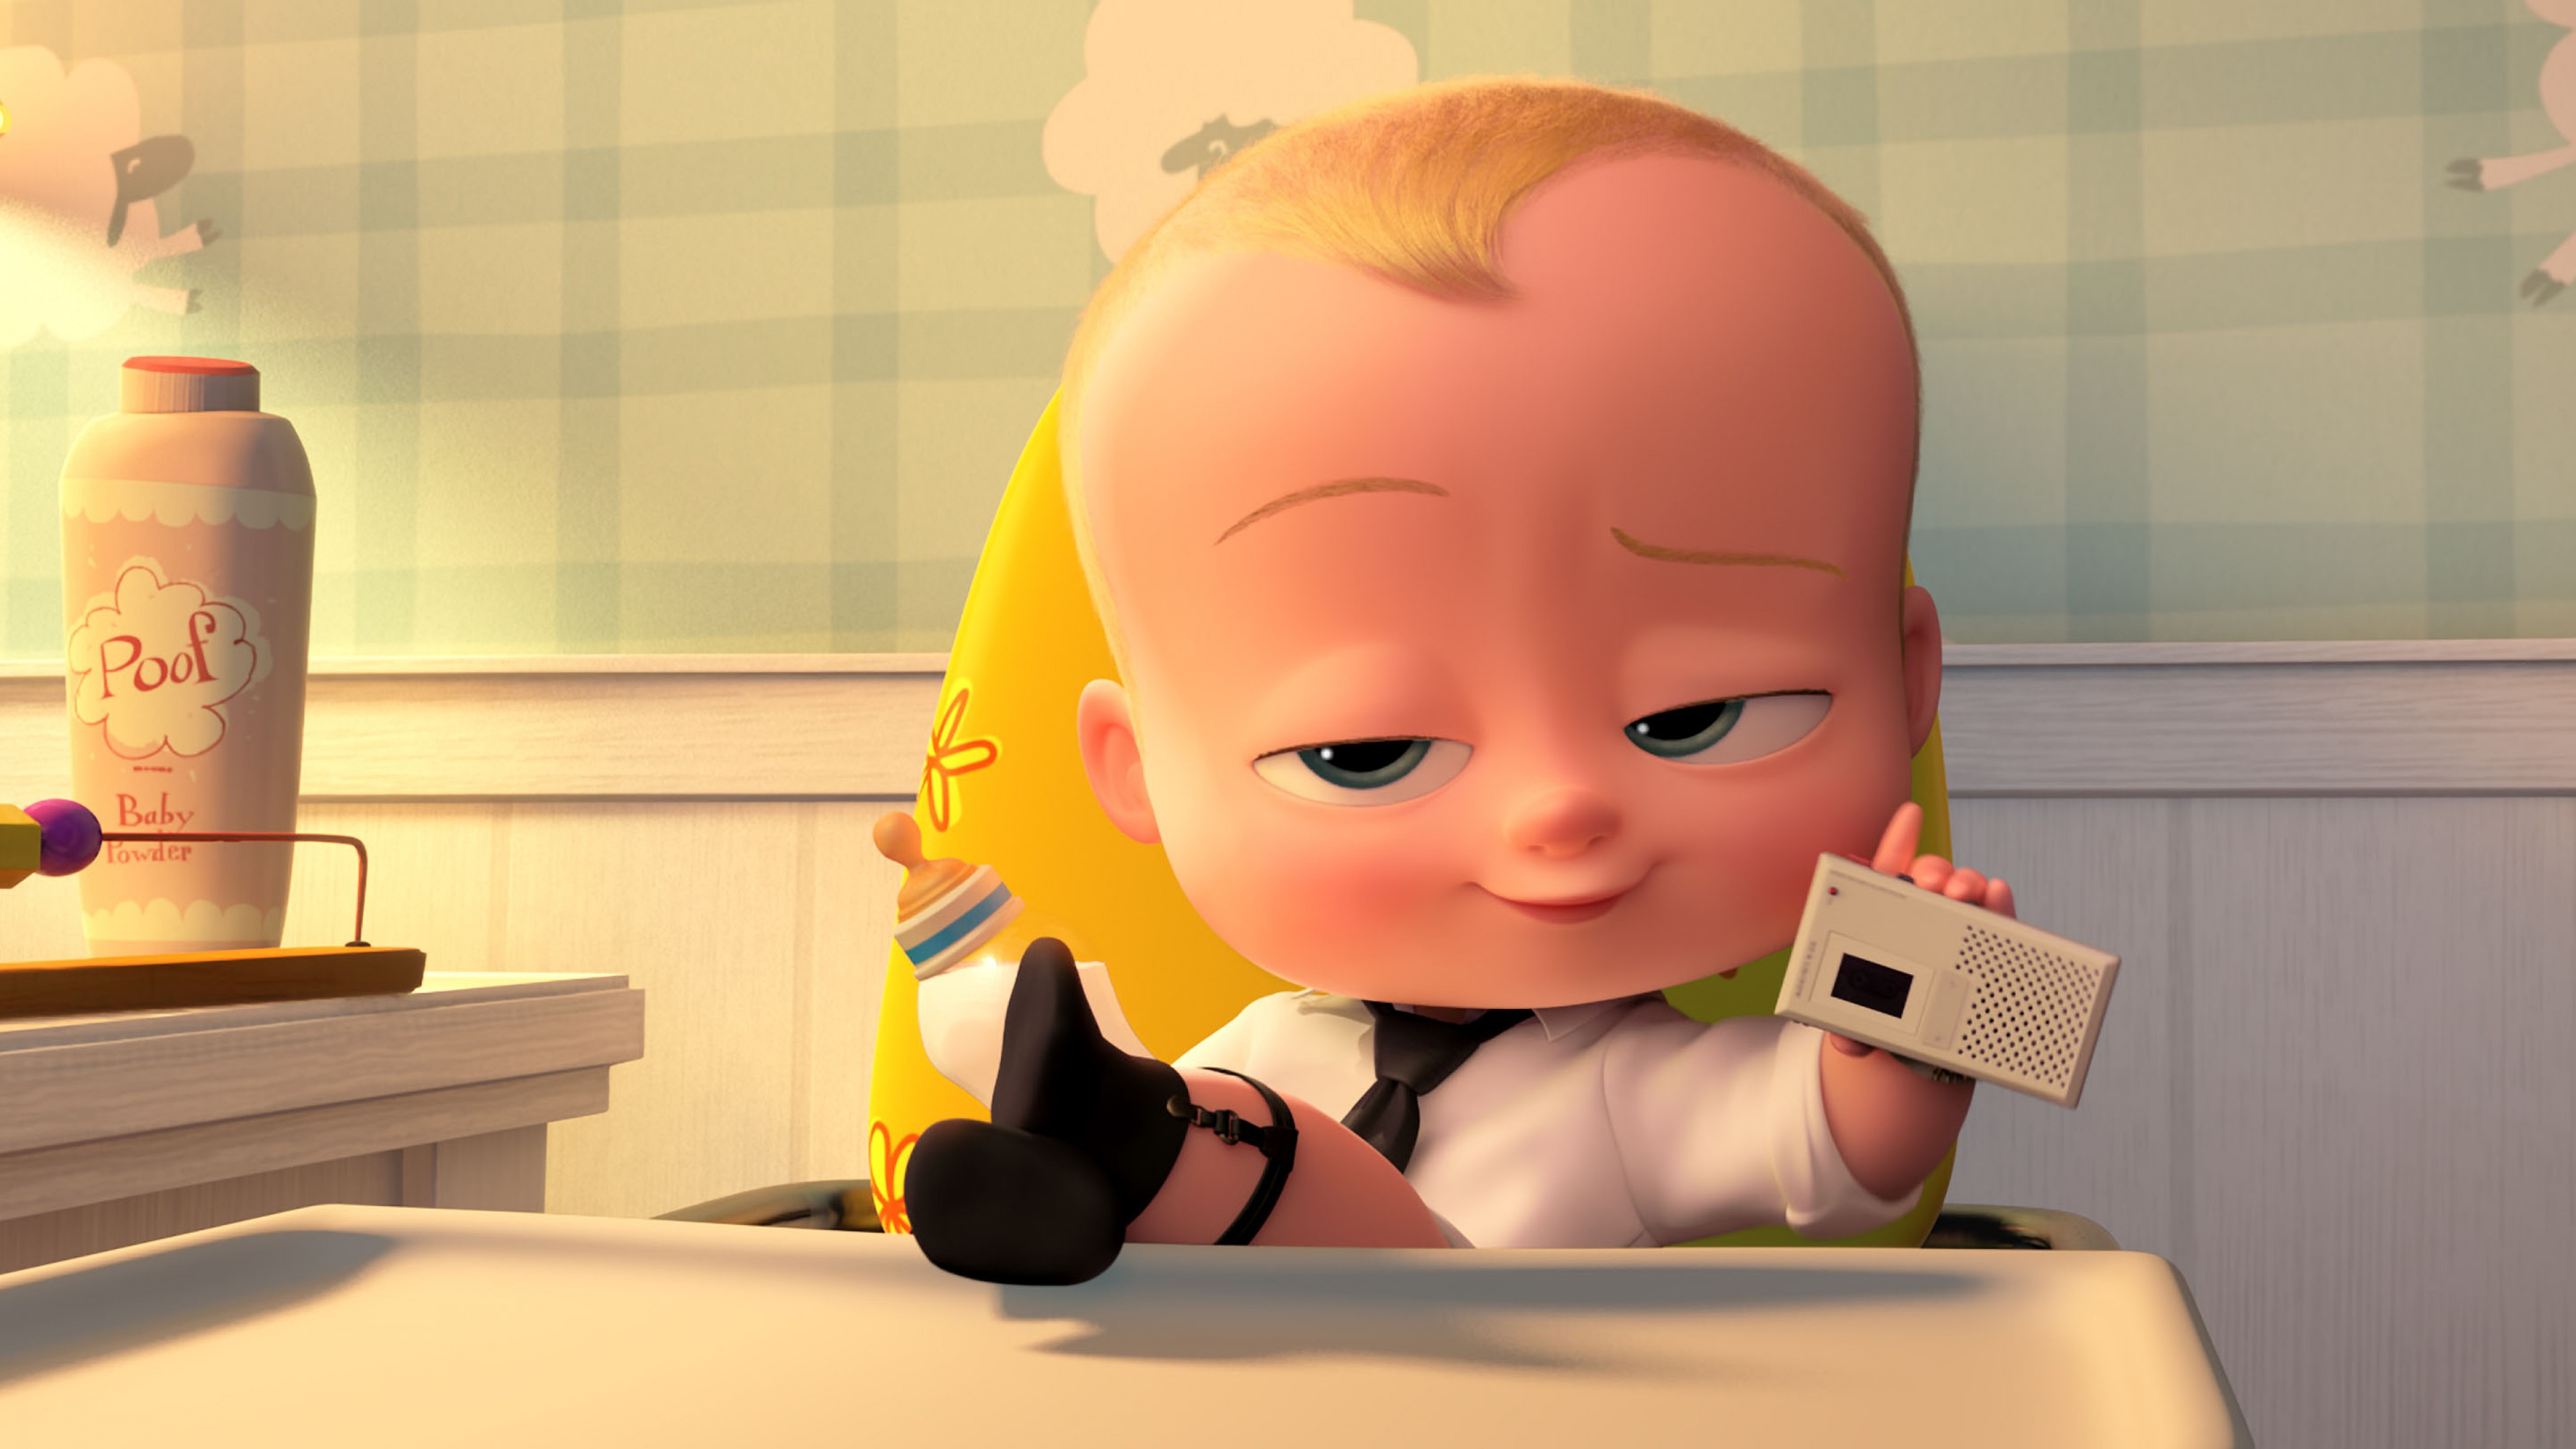 the-boss-baby-3840x2160-animation-baby-hd-4k-2994 (1)